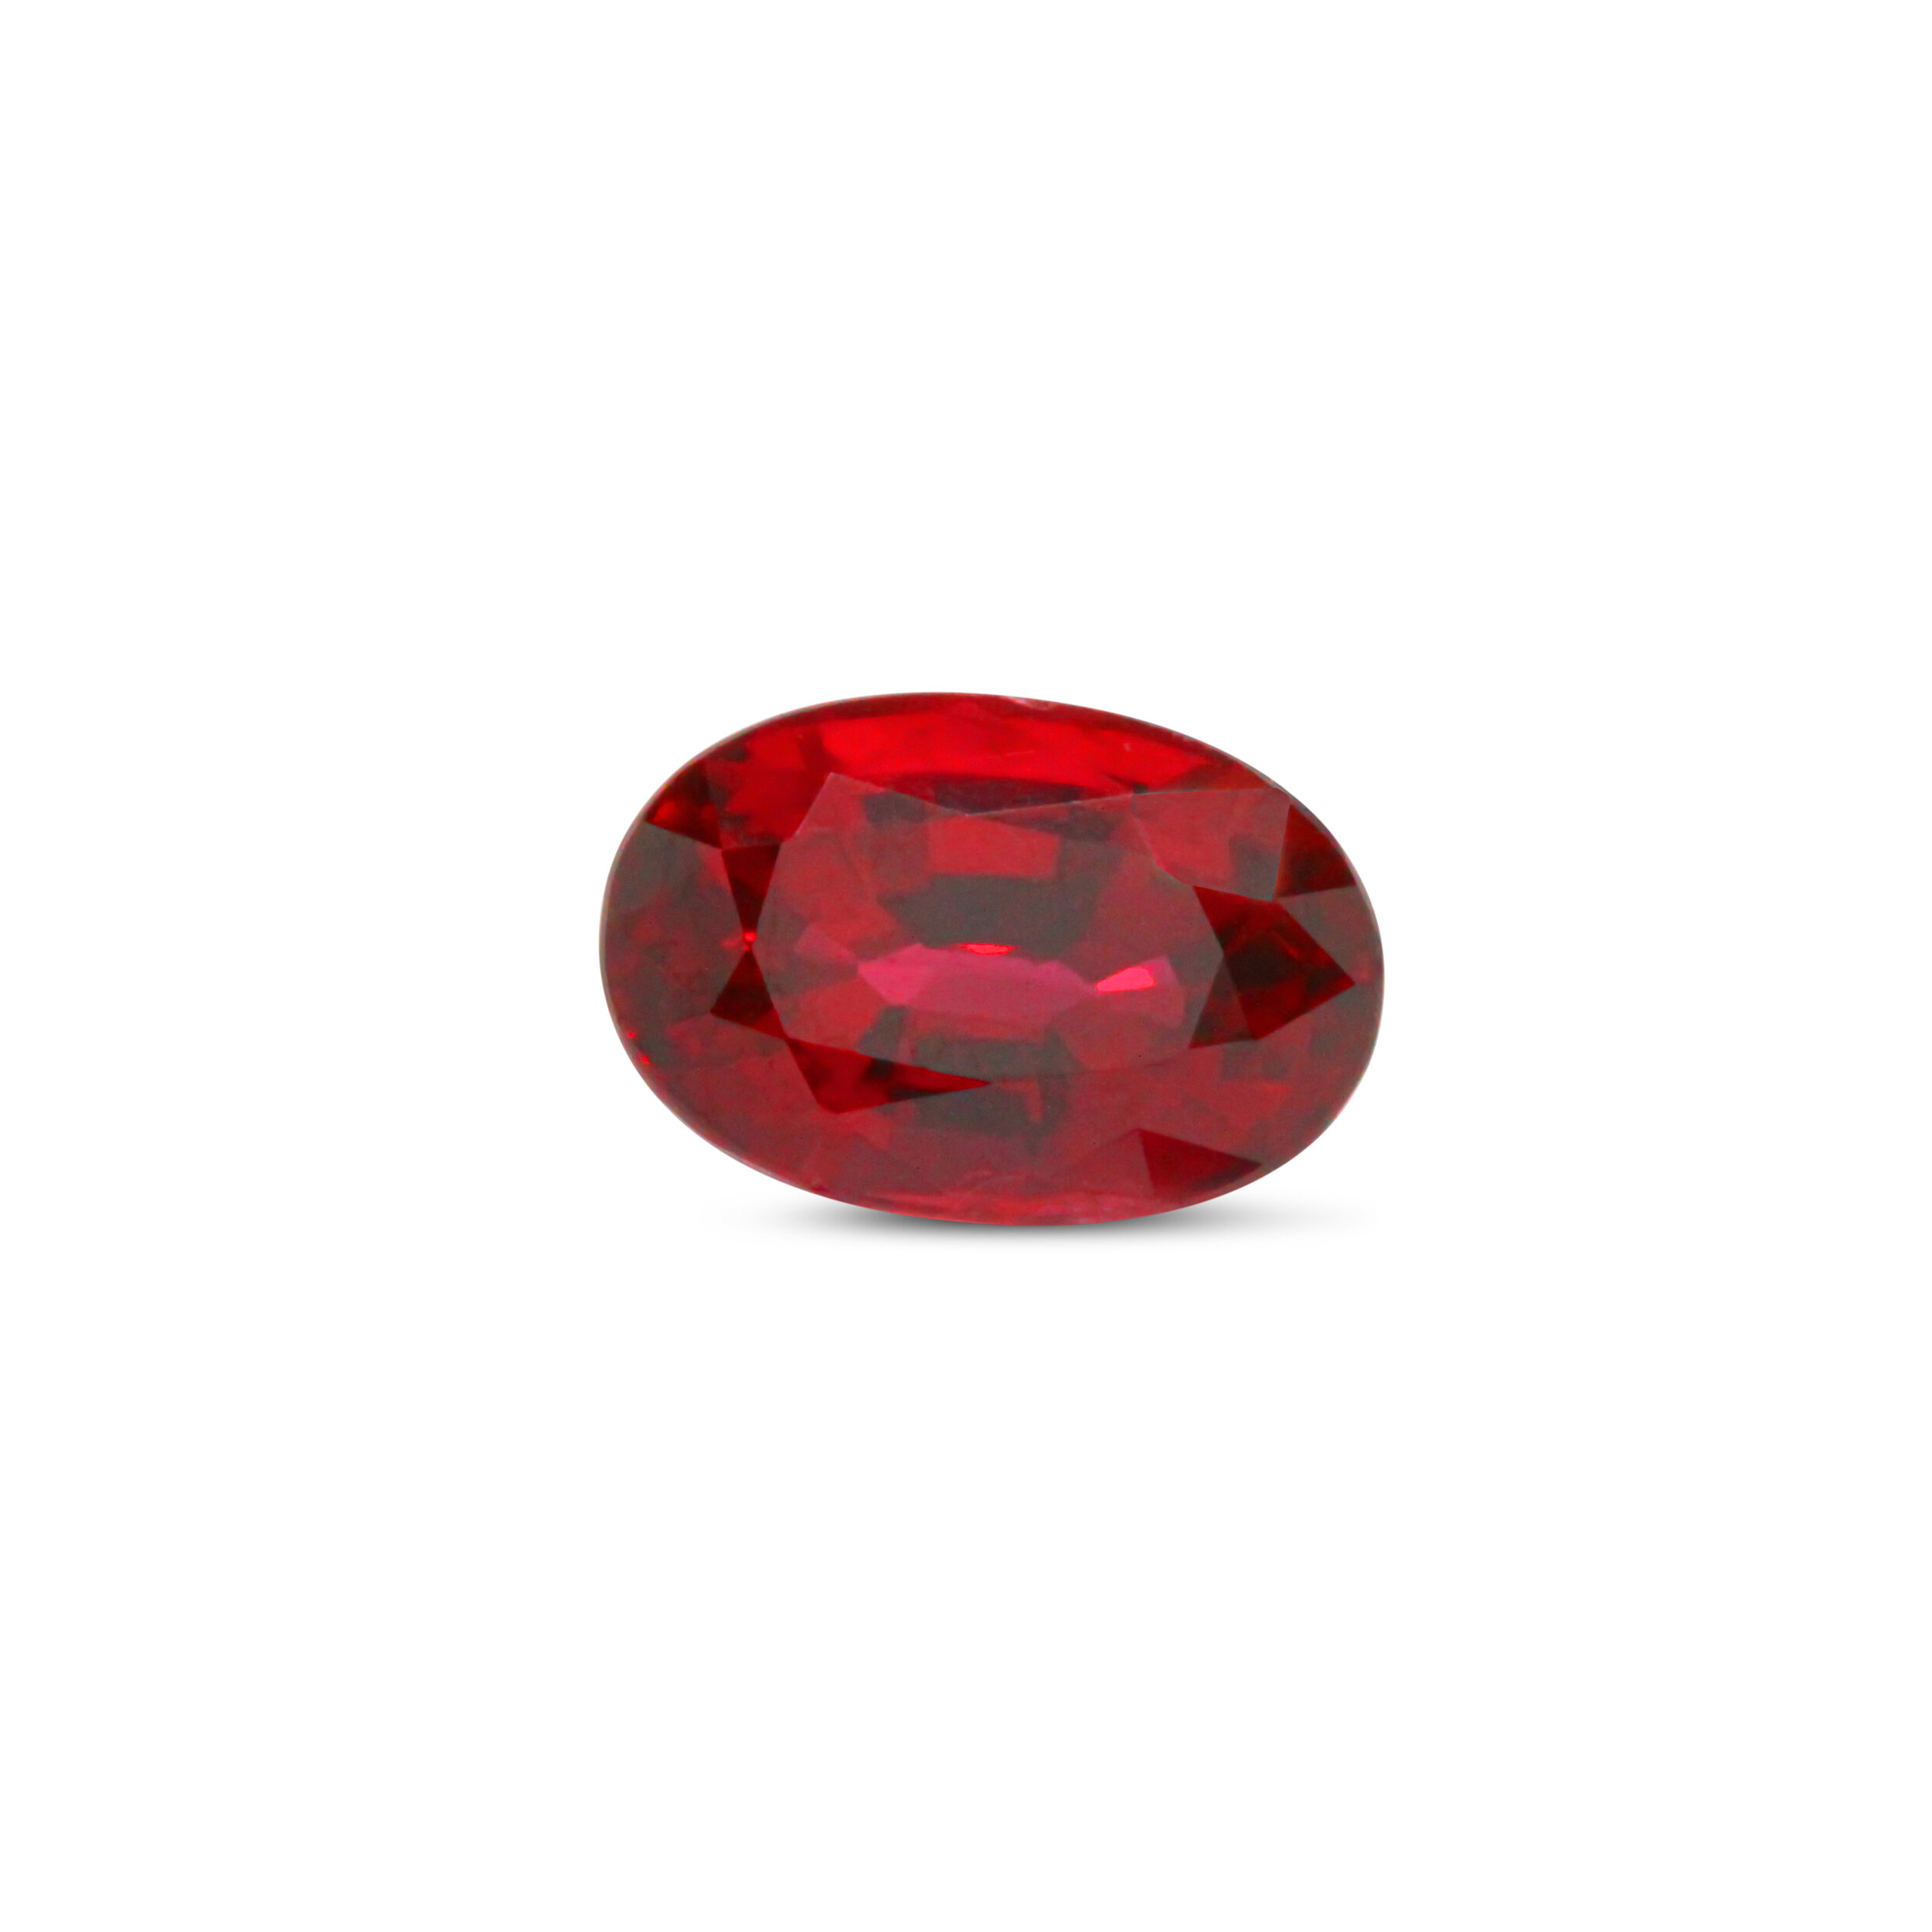 1 ct Unheated Mozambique Ruby, GIA